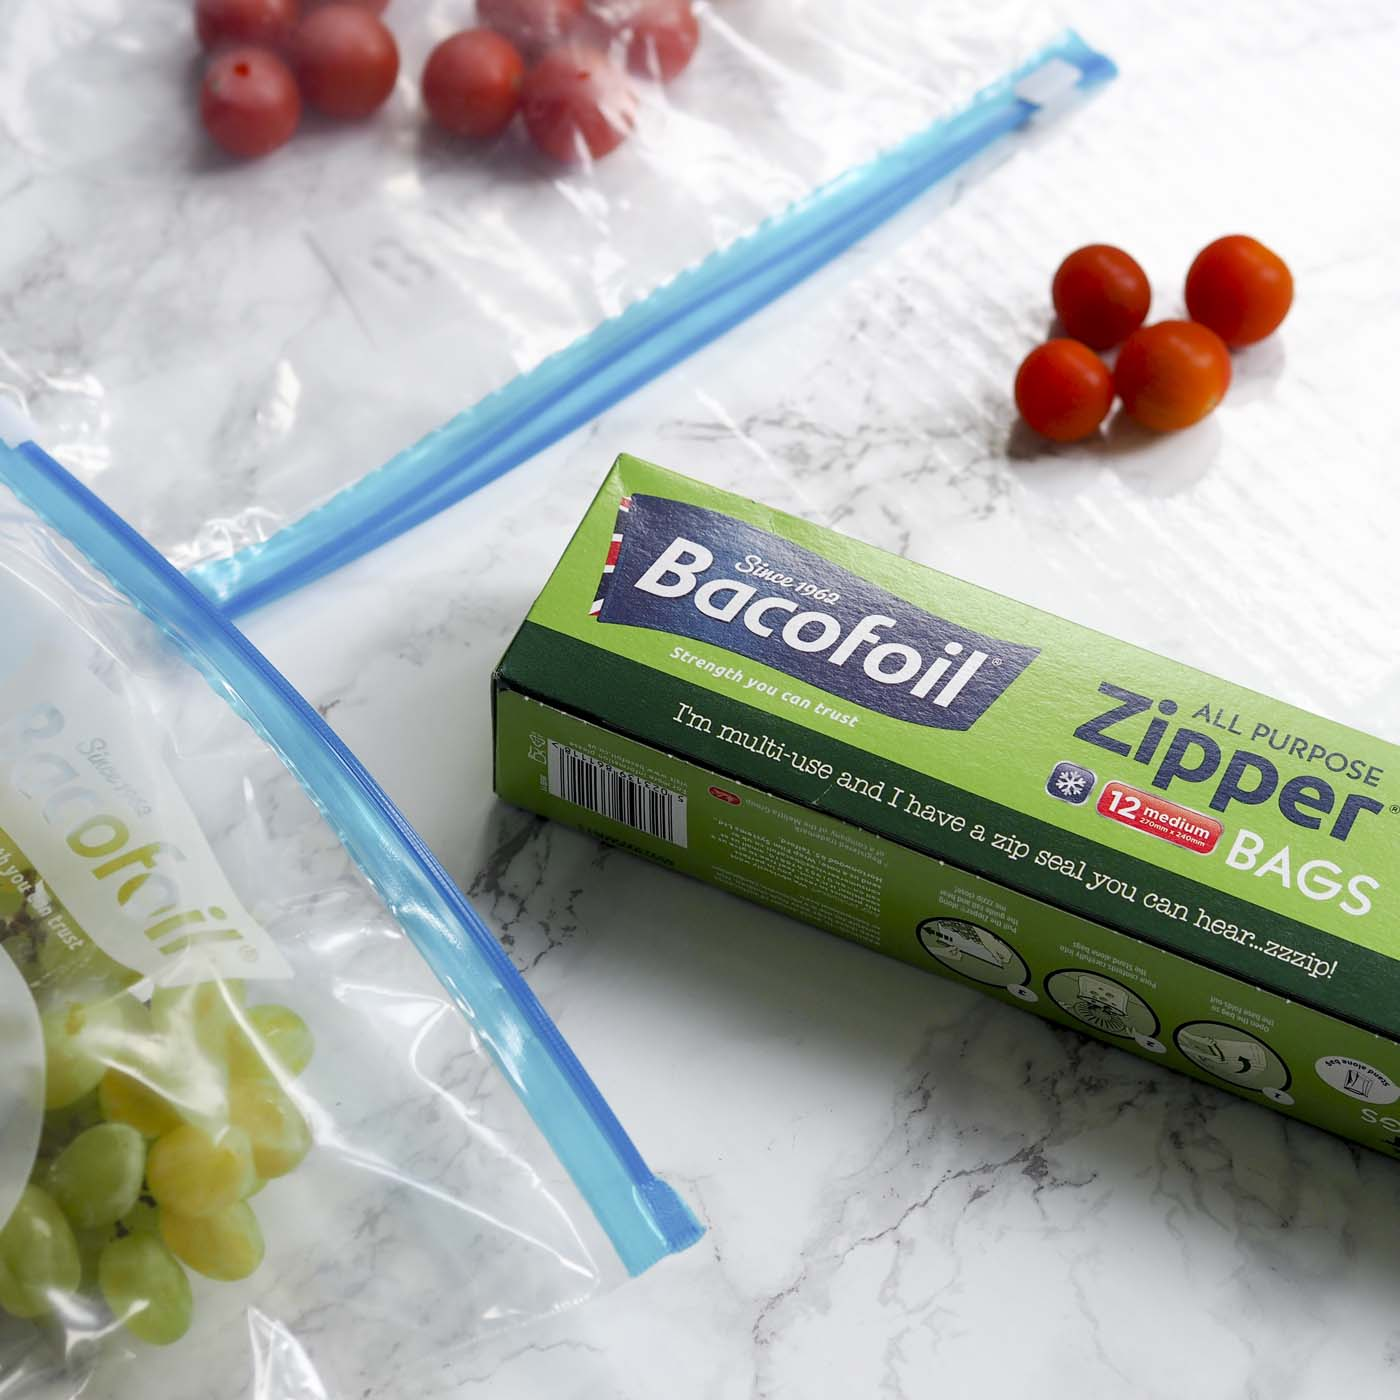 4369b3d63e6a 5 Ways To Use Bacofoil All Purpose Zipper Bags in Family Life (aka The  Bacofoil Zipper Bag Challenge!)